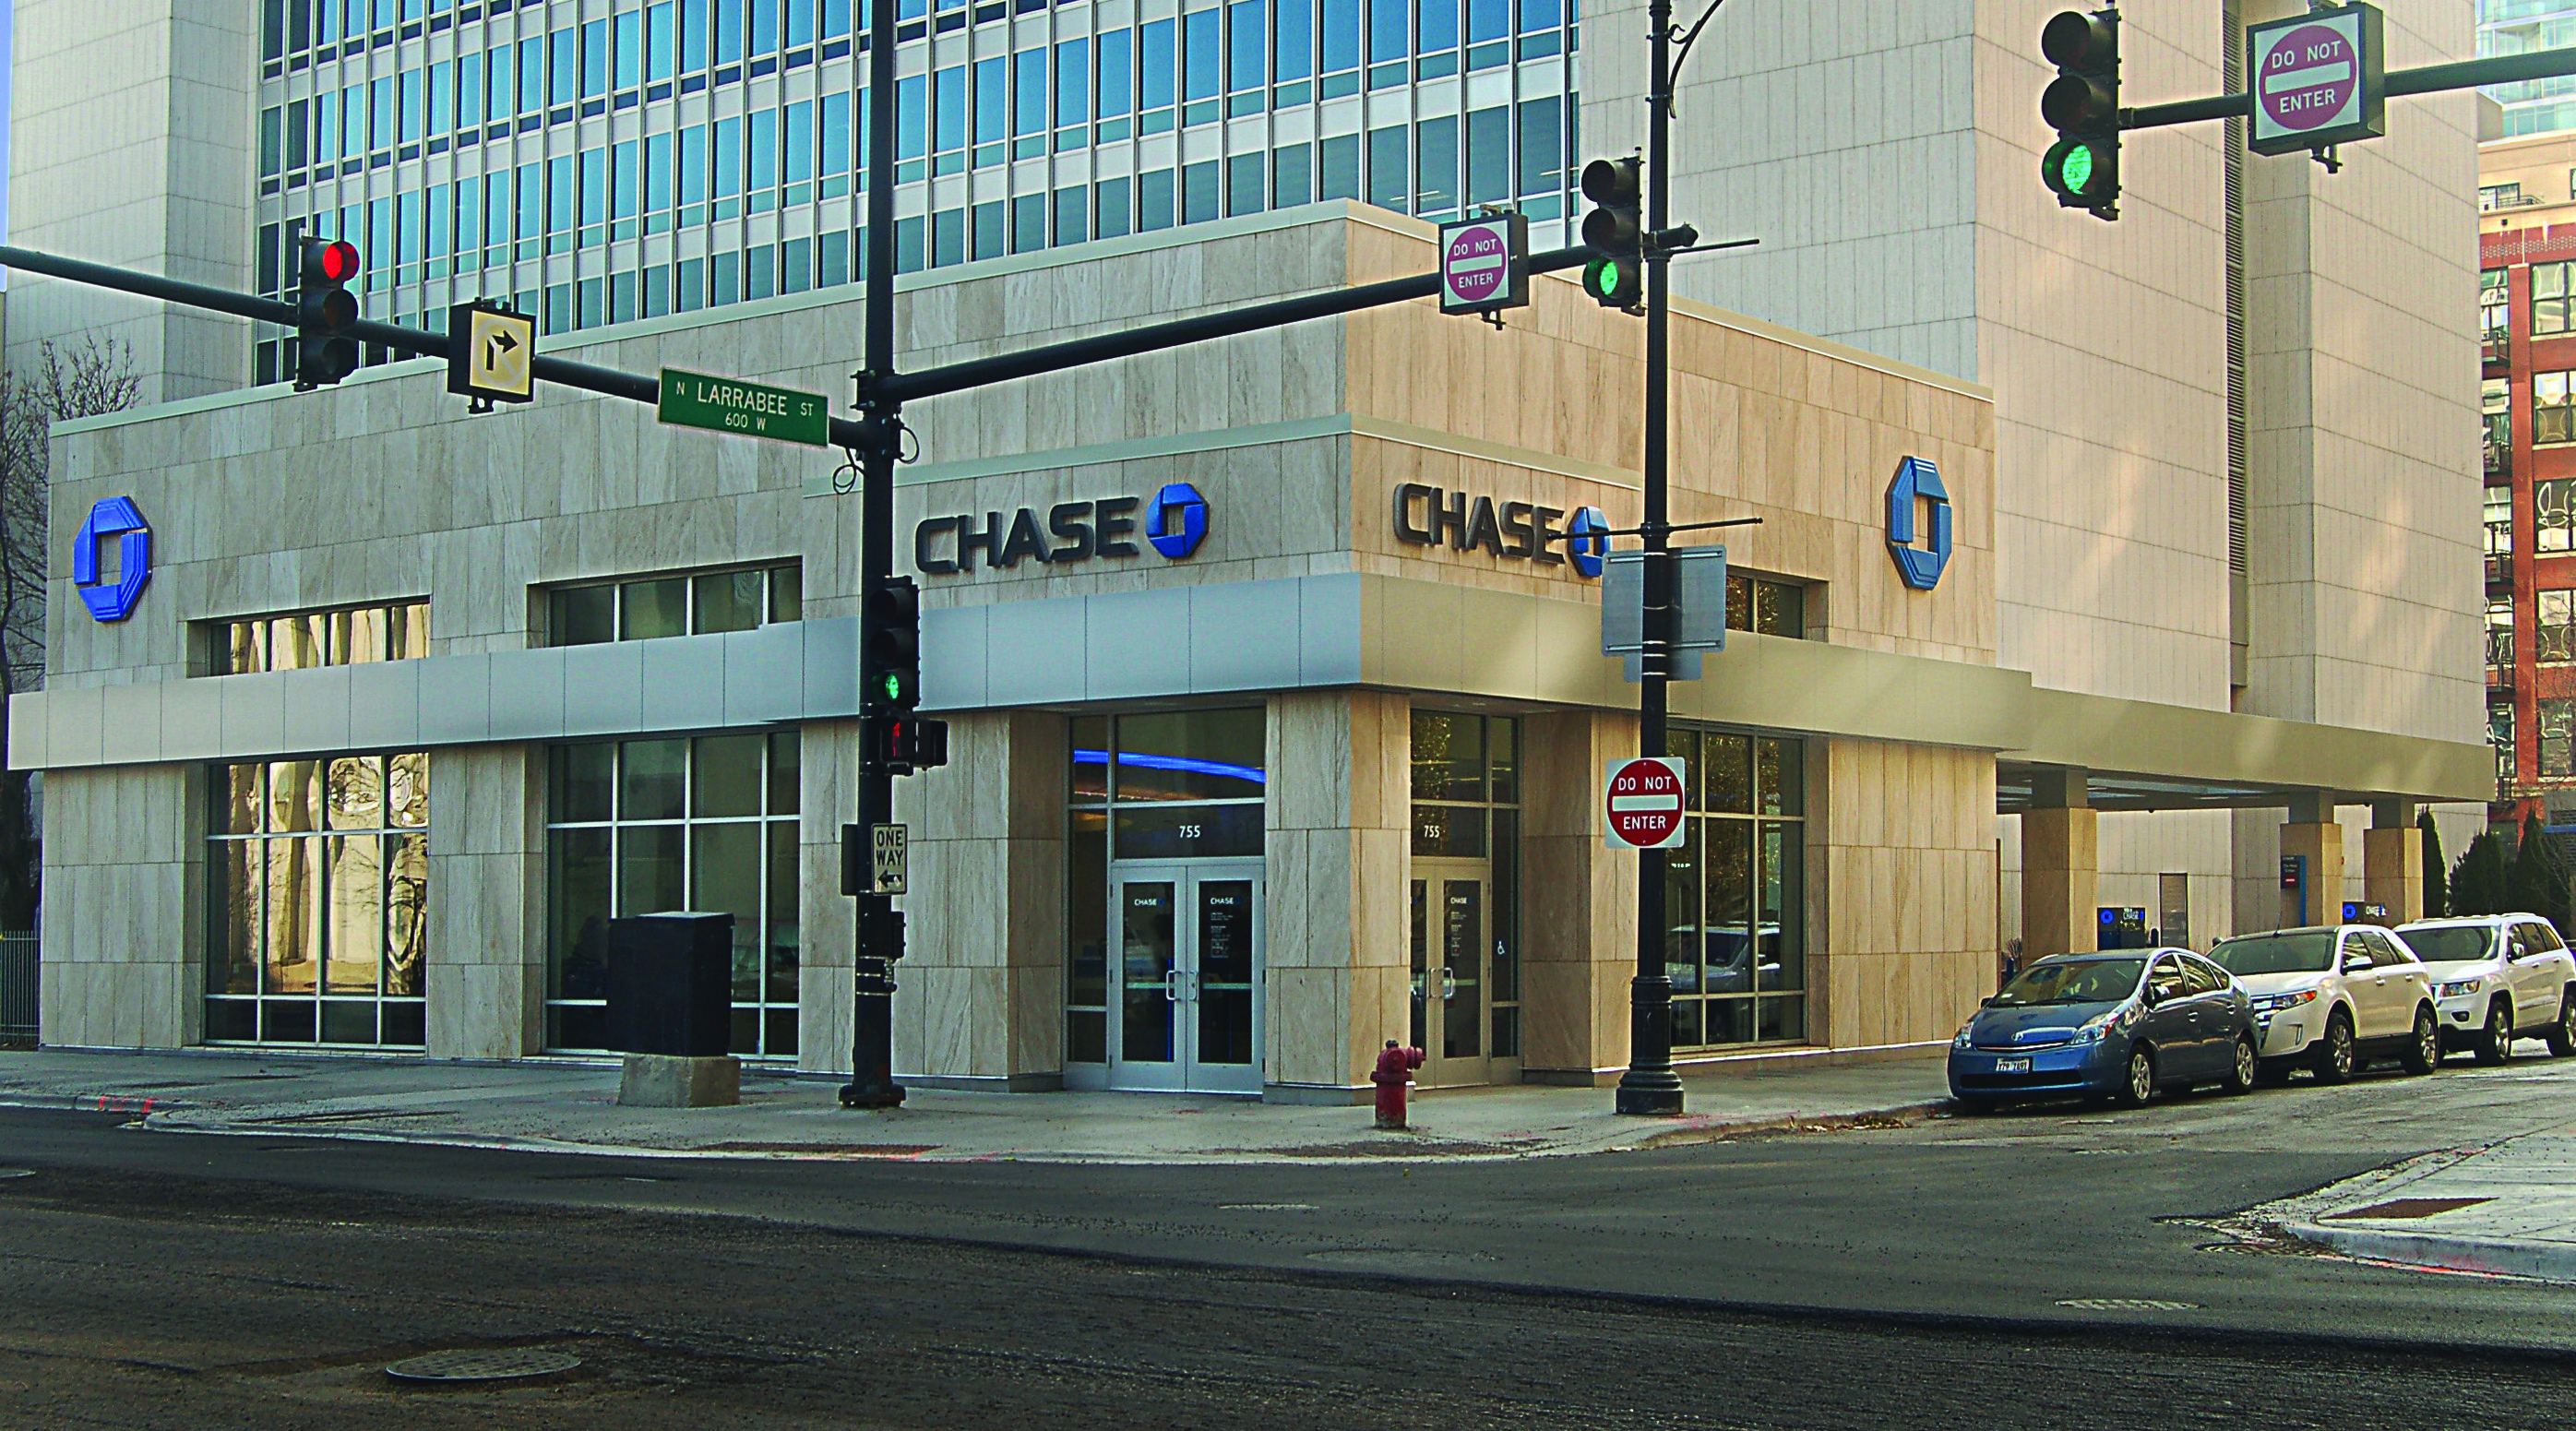 Larrabee & Chicago Branch